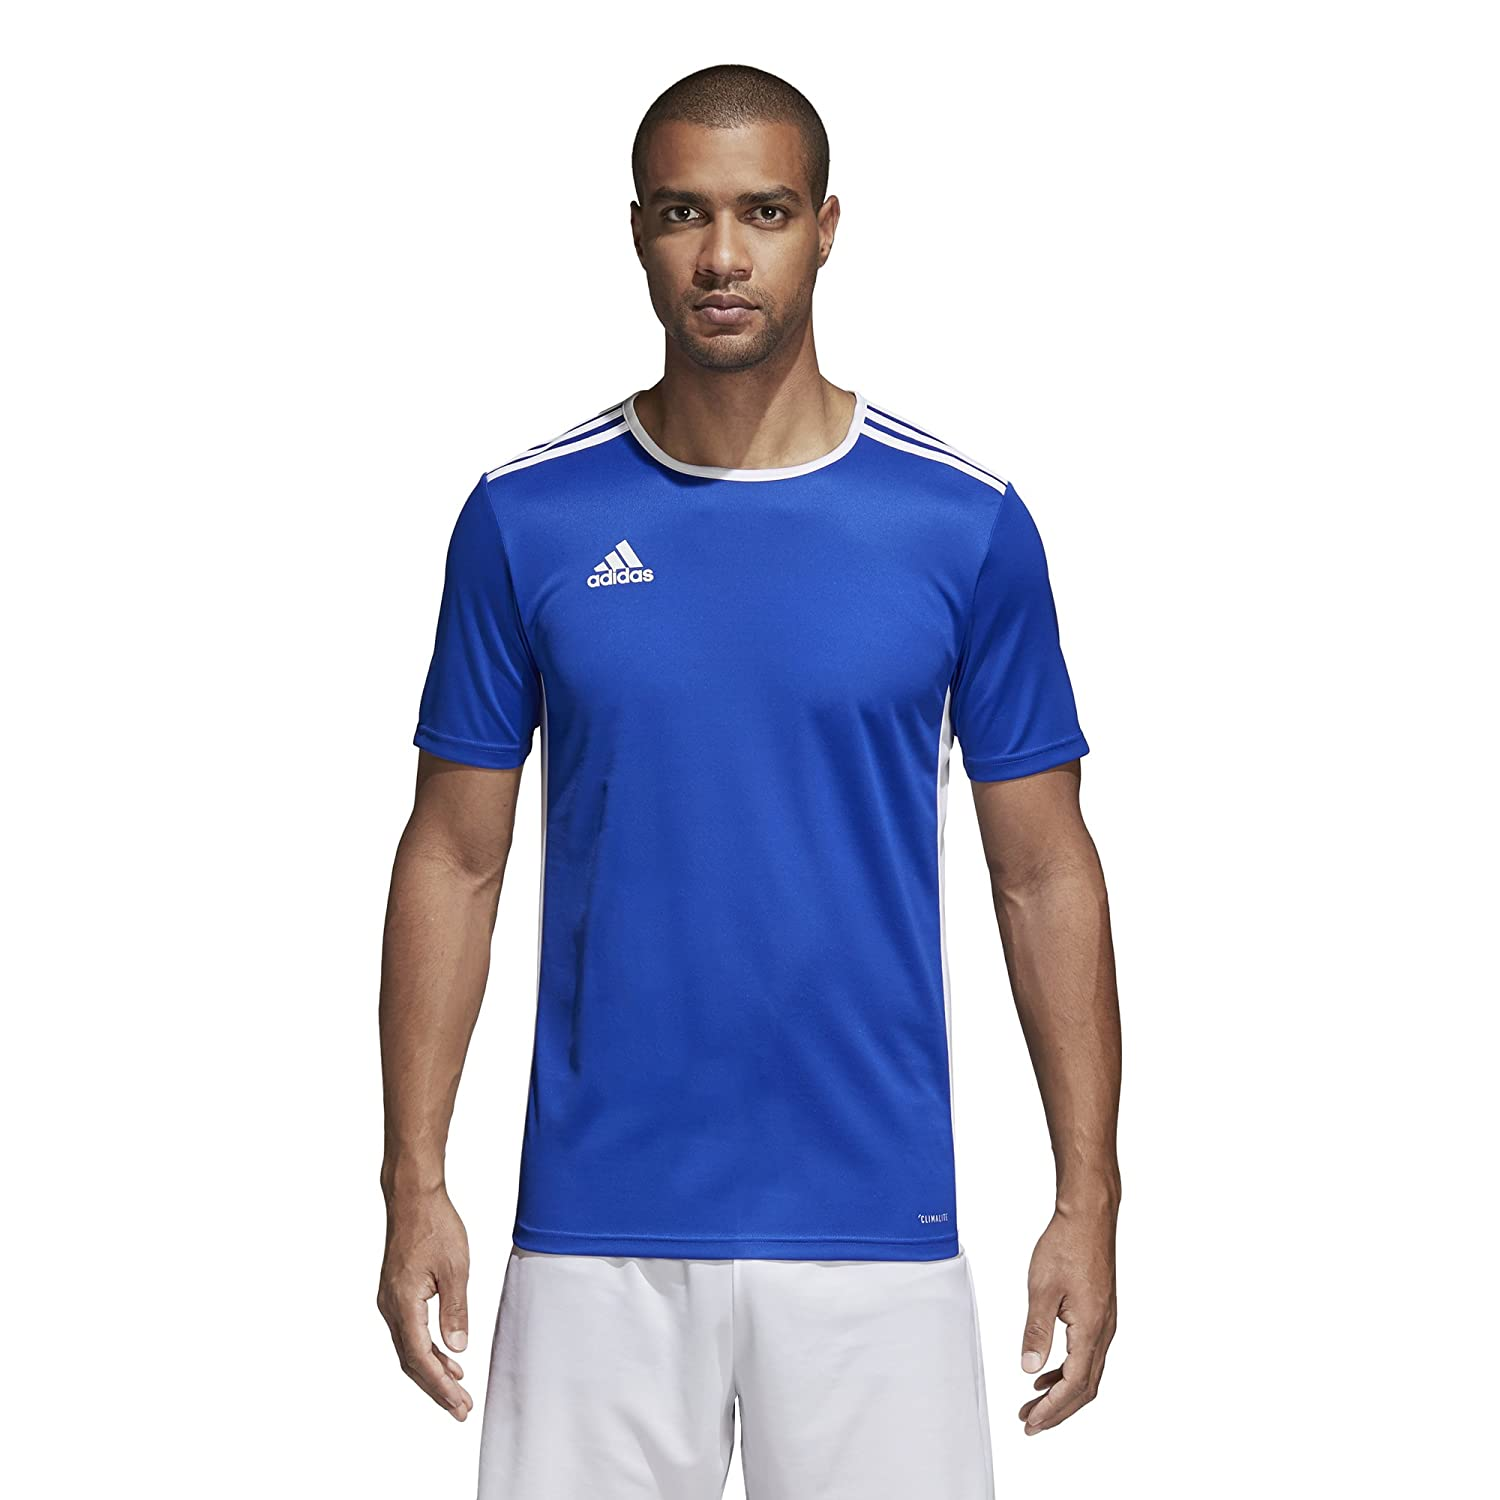 Adidas エントラーダ ジャージー メンズ サッカー 18 B0721VXS1J Medium|Bold Blue/White Bold Blue/White Medium